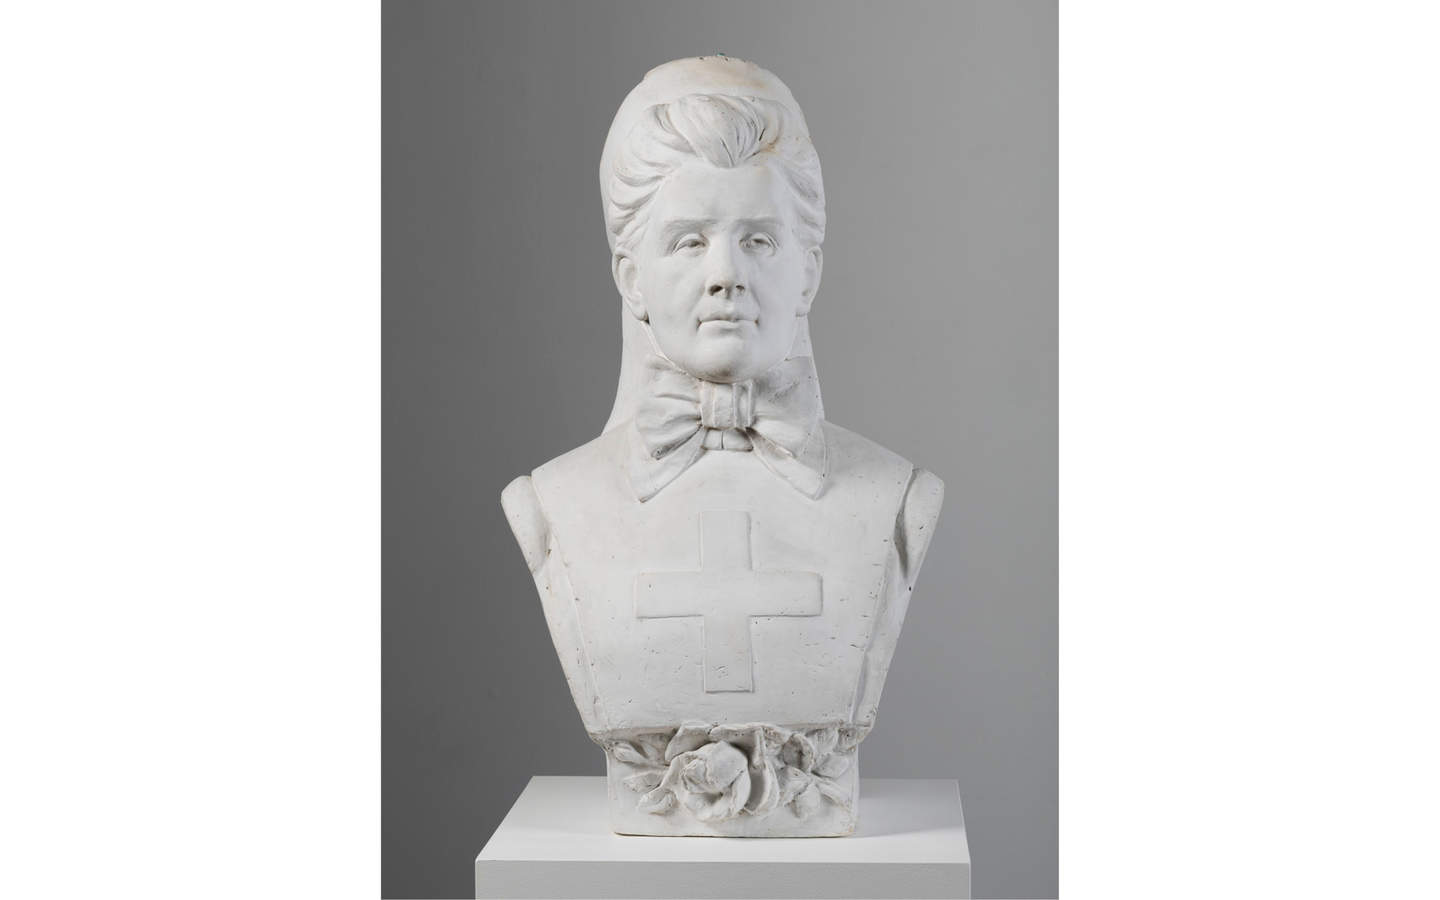 White plaster bust of a woman on a white pedestal. The woman is wearing a stiff, flat garment with medical cross on the chest and a large bow at the neck.